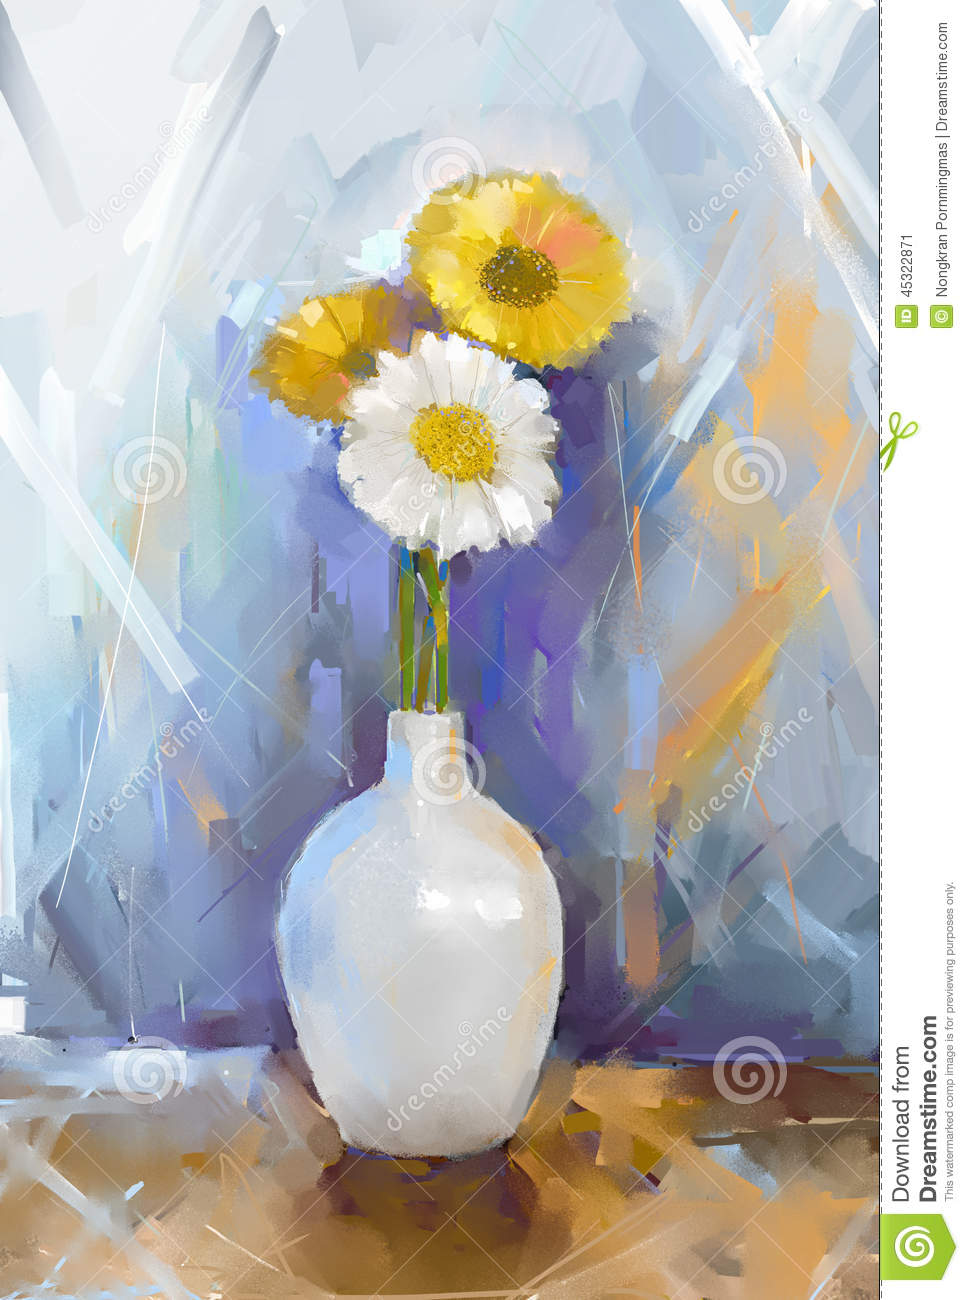 flower vases london with Stock Illustration Gerbera Flower Abstract Flower Oil Painting Still Life Vase Bouquet Flowers Image45322871 on View Product besides Diy Ideas For Perfect Wedding Centerpieces besides English Rose in addition Stock Illustration Gerbera Flower Abstract Flower Oil Painting Still Life Vase Bouquet Flowers Image45322871 additionally Zena Star Vegetable Peeler.